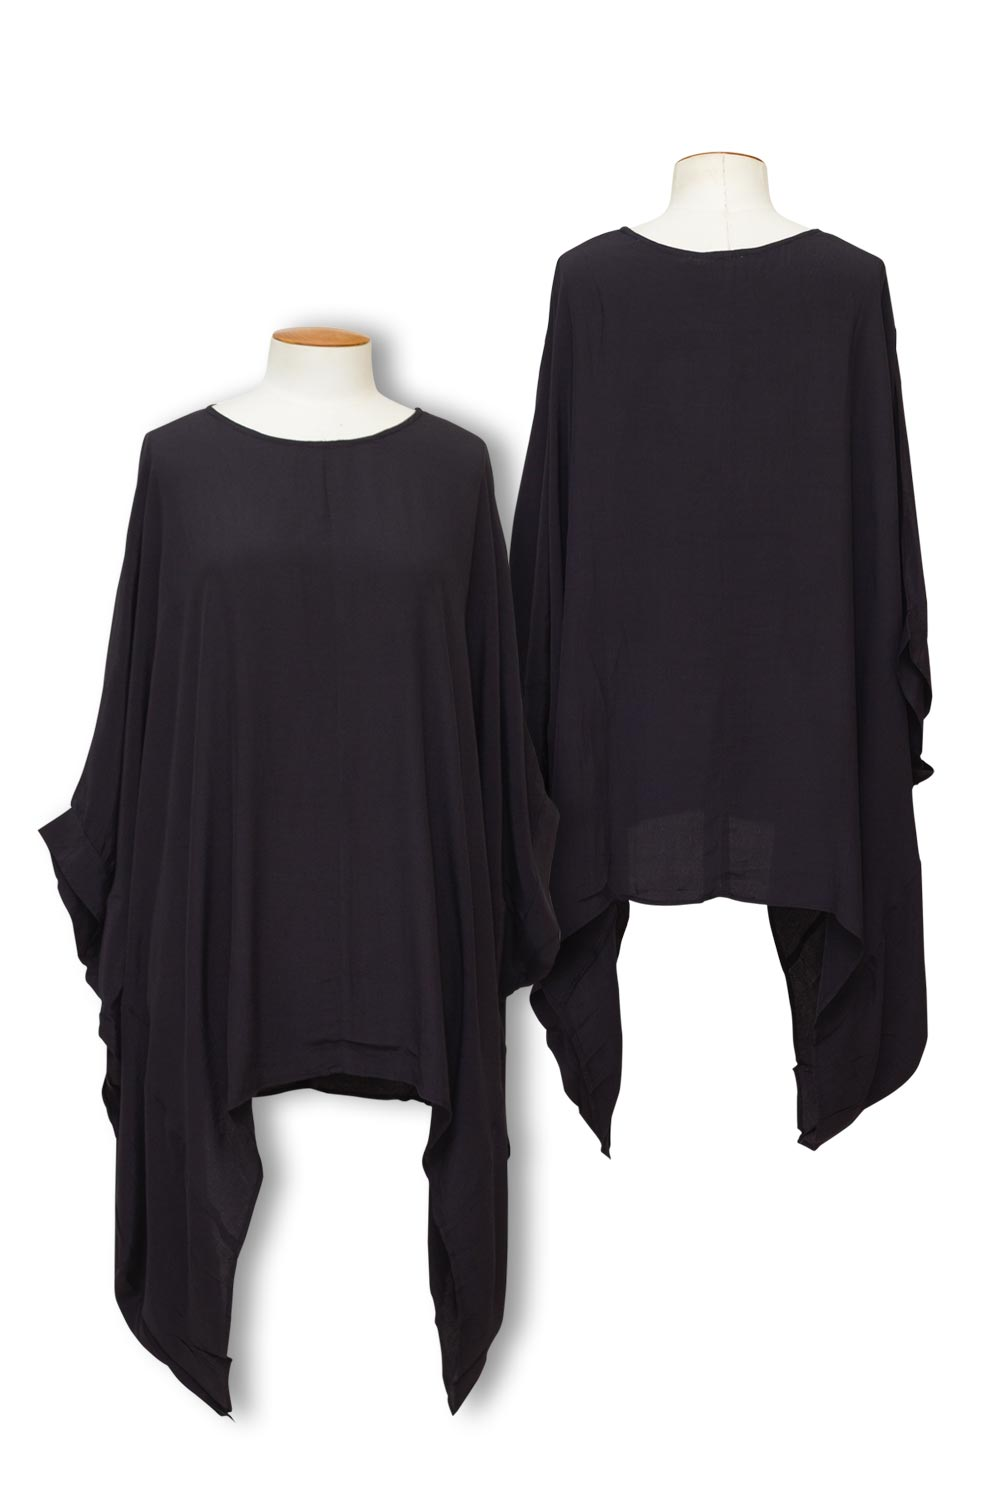 Holiday - H948-1 Hideaway Top